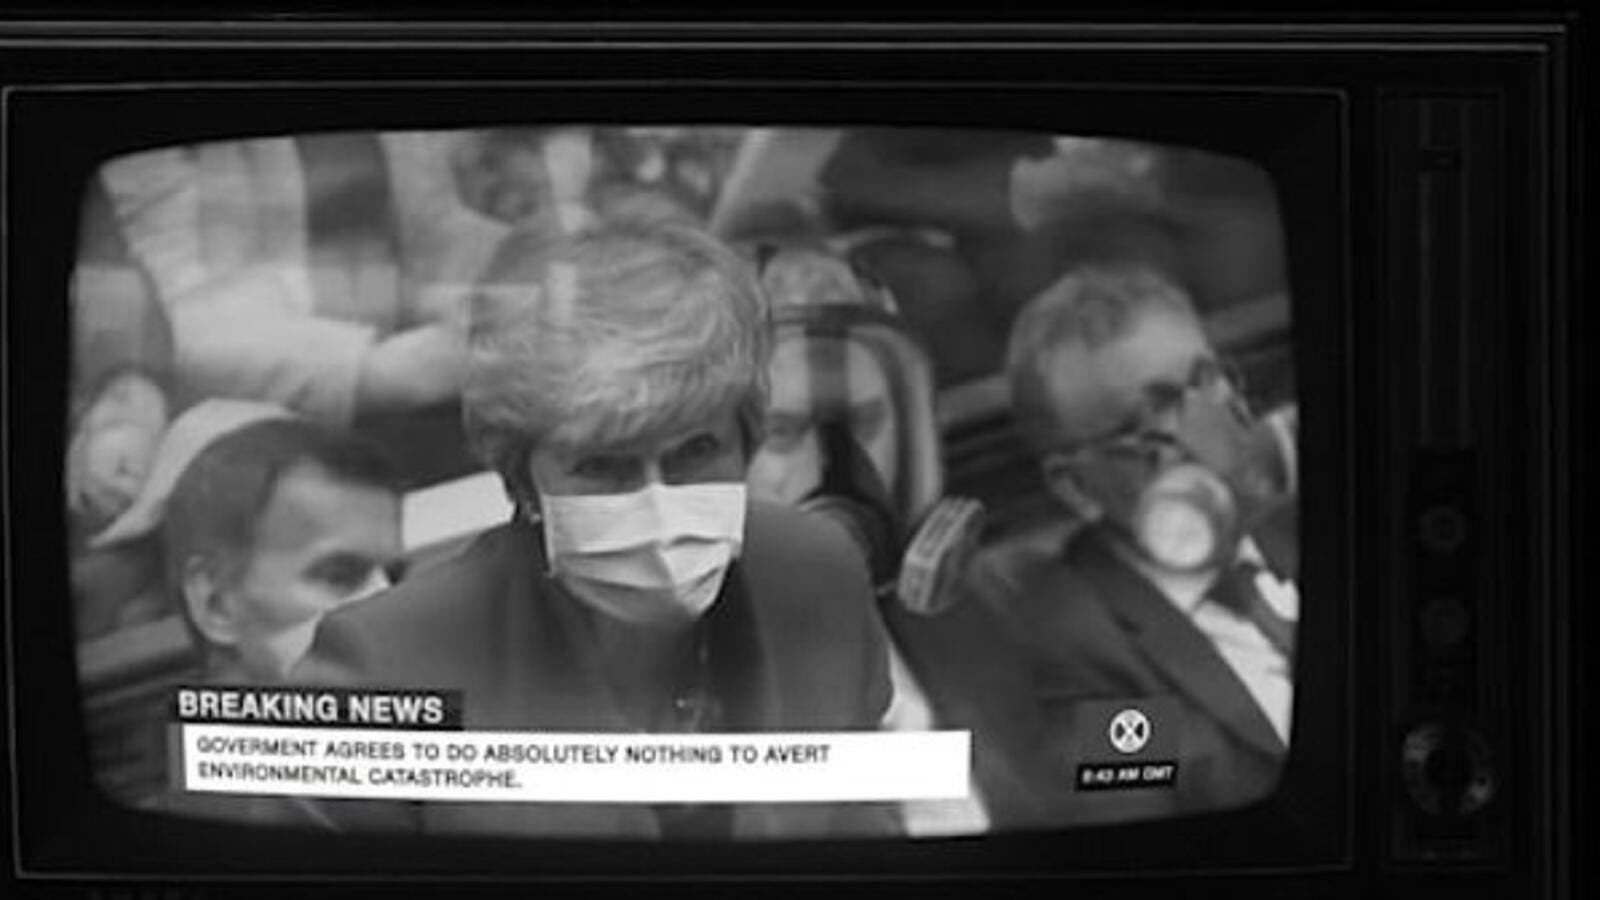 Extinction Rebellion is aiming to scoop the coveted Christmas number one slot with its debut song about climate change. It features a doctored video of former Prime Minister Theresa May addressing the commons with a 'breaking news' banner underneath with the words: 'Government agrees to do absolutely nothing to avert environmental catastrophe' (dailymail)